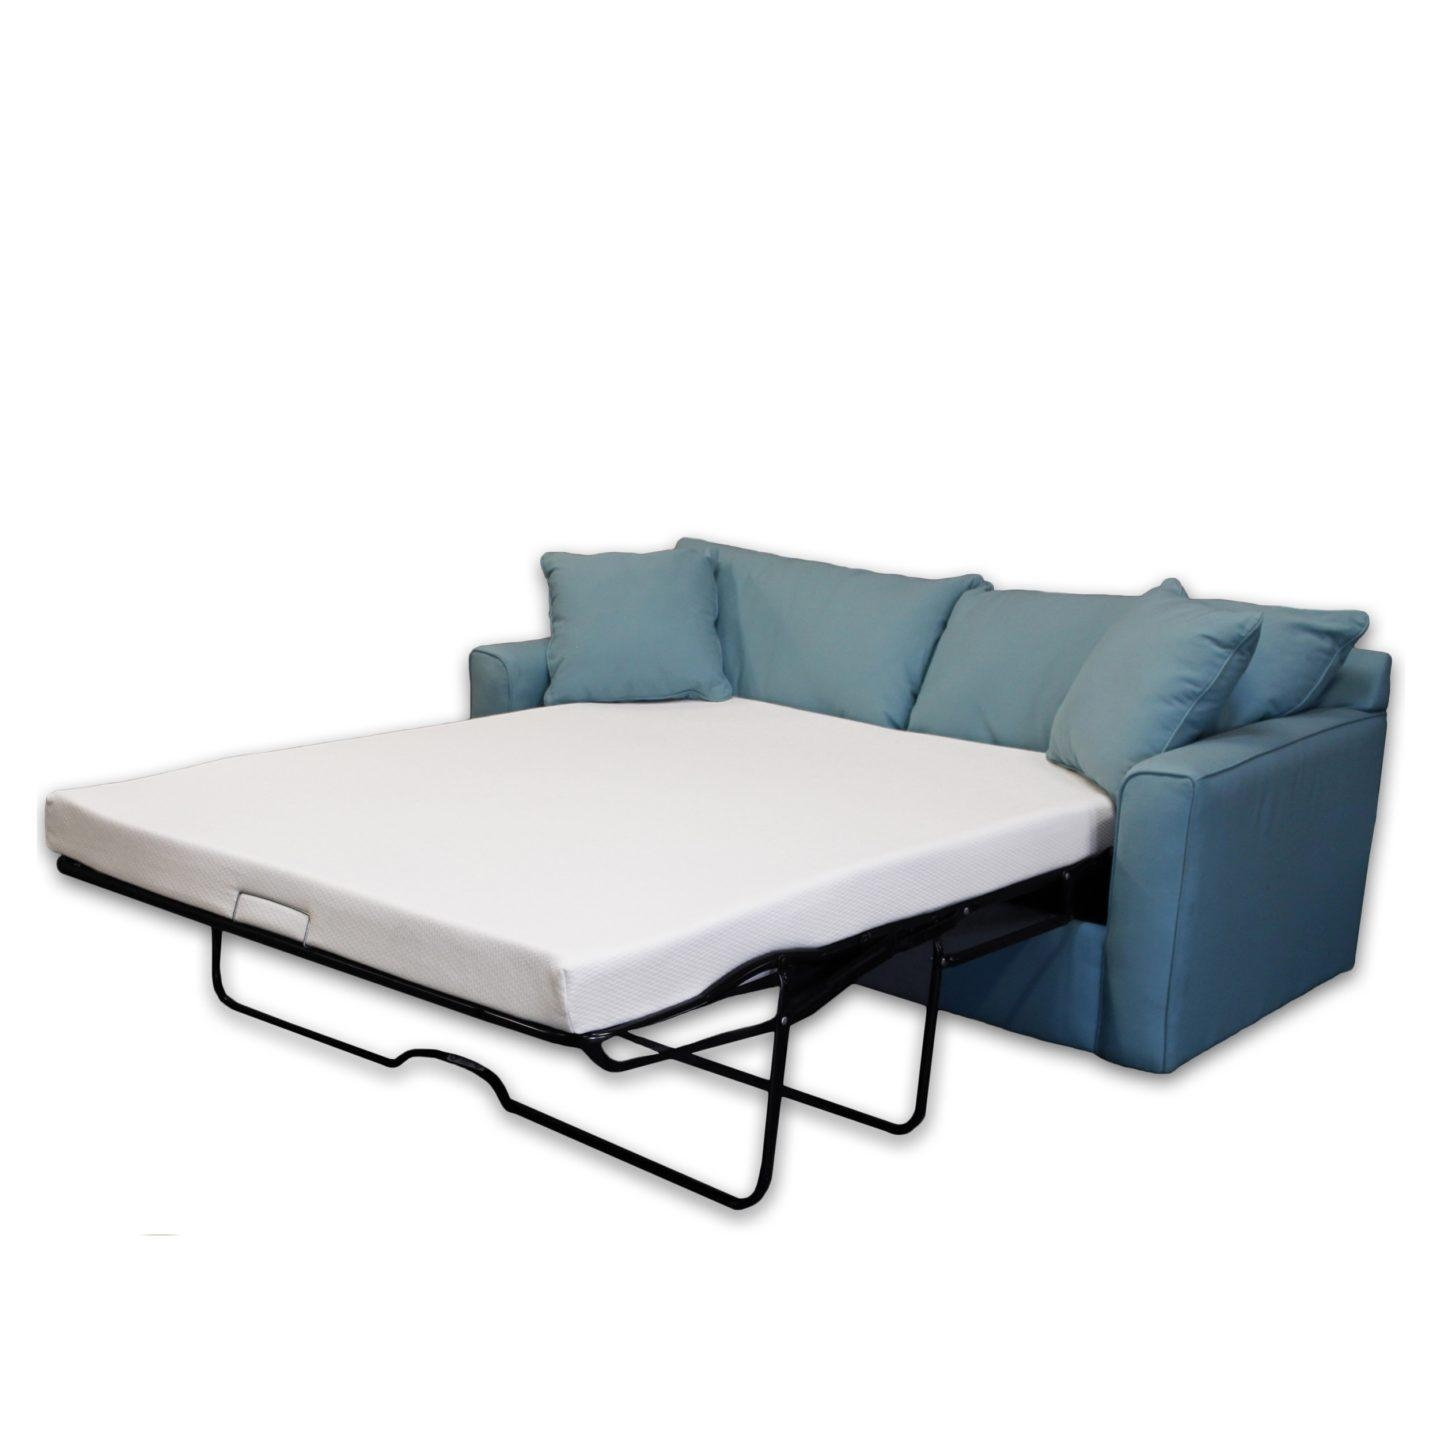 how to make a pull out sofa bed more comfortable geometric design side table 2018 latest beds with mattress support ideas